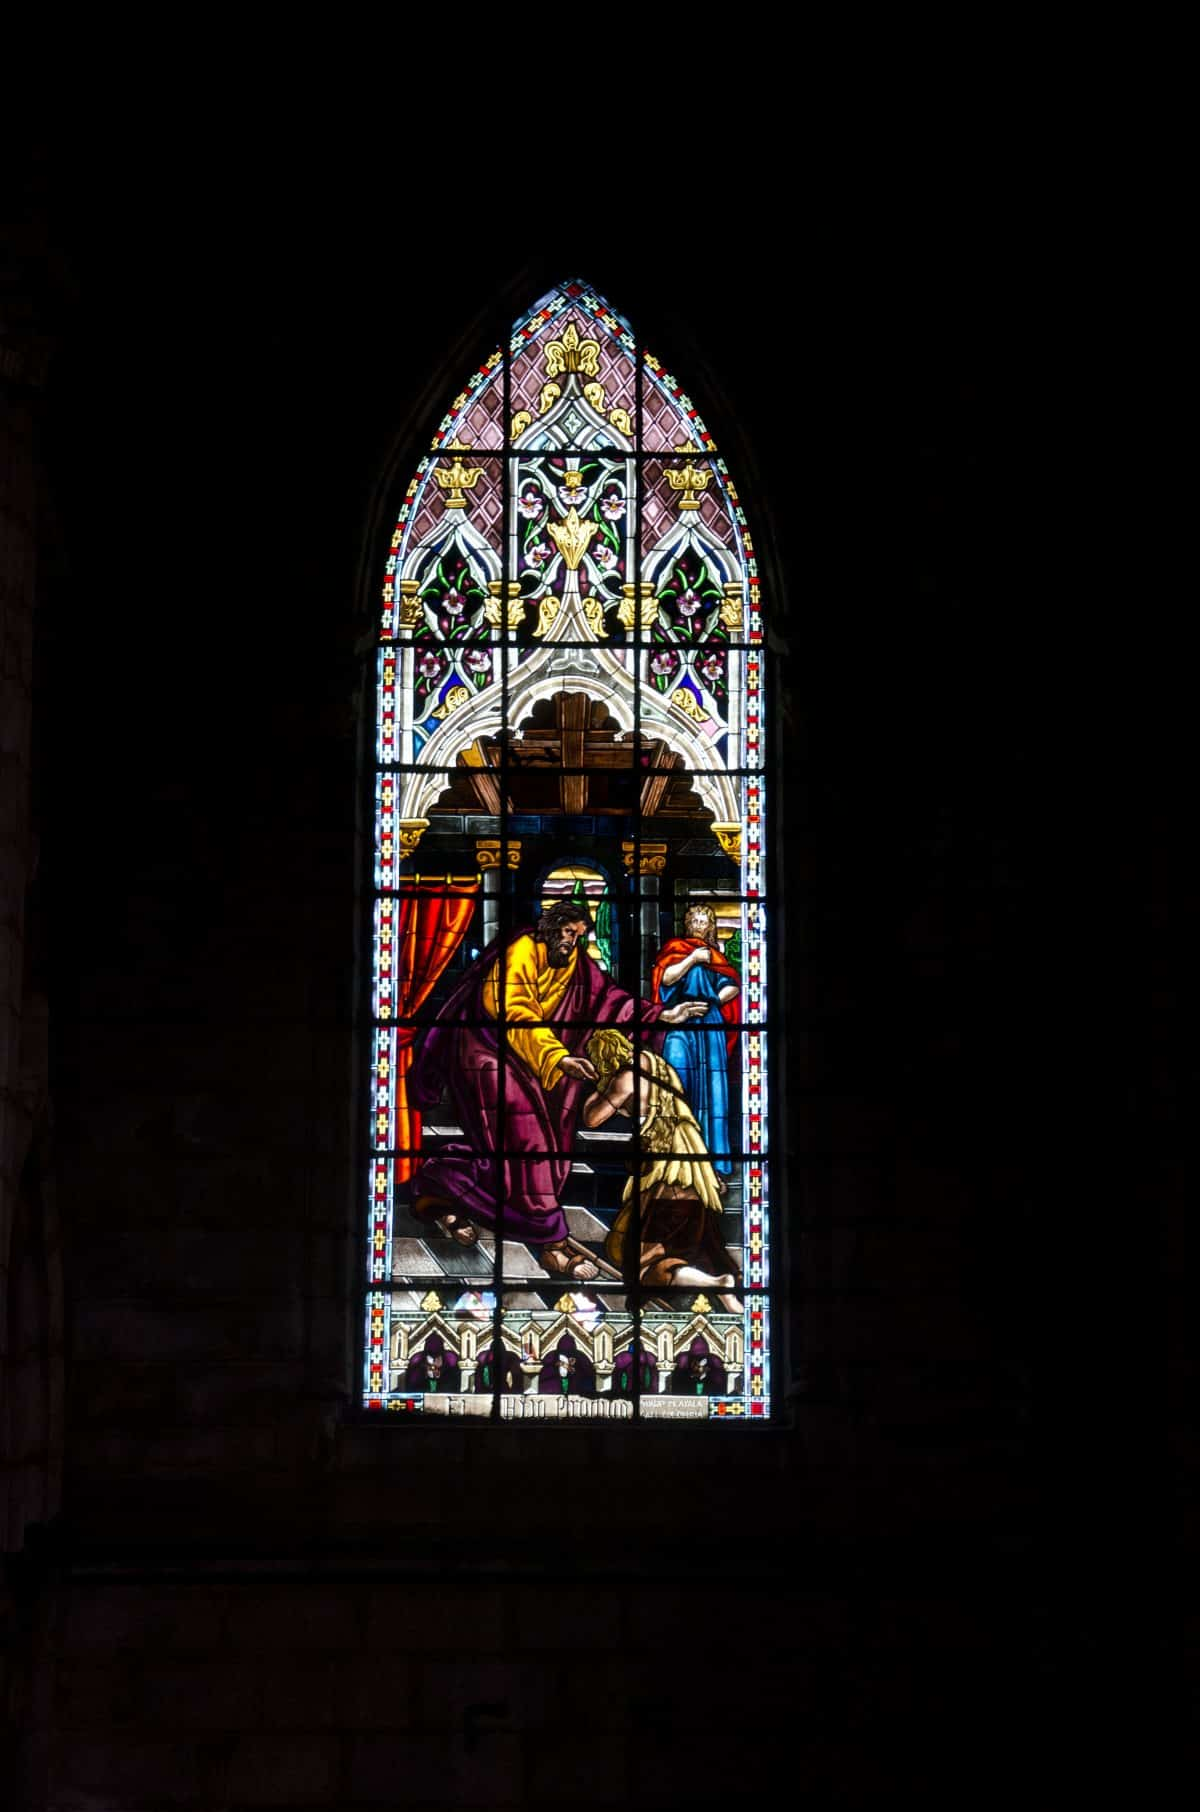 The stained glass windows are all very ornate | ©Angela Drake